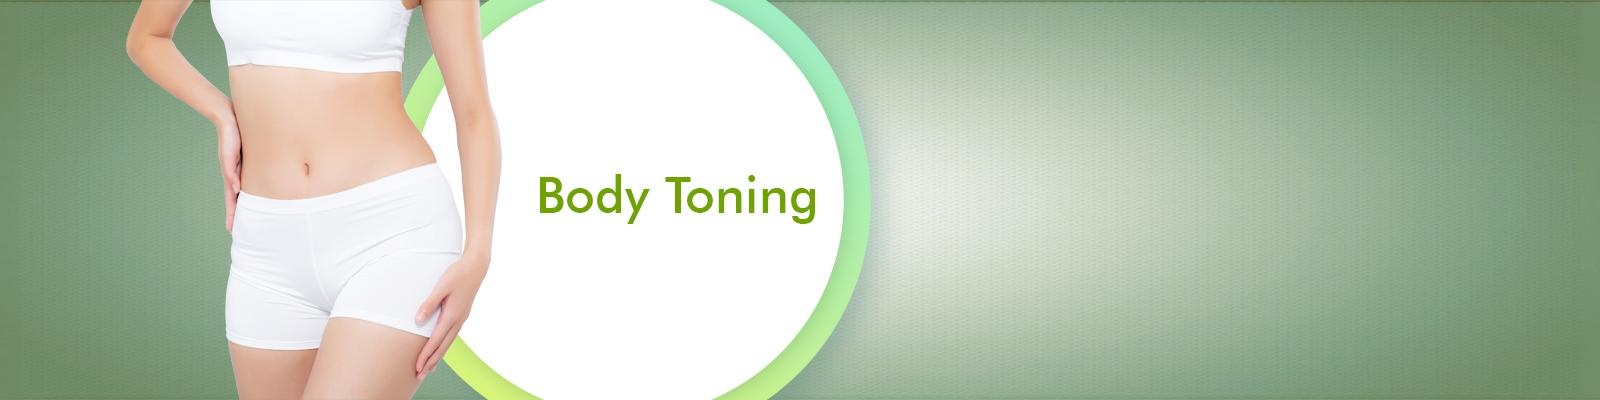 Body Toning Treatment &  Body Toning Solutions